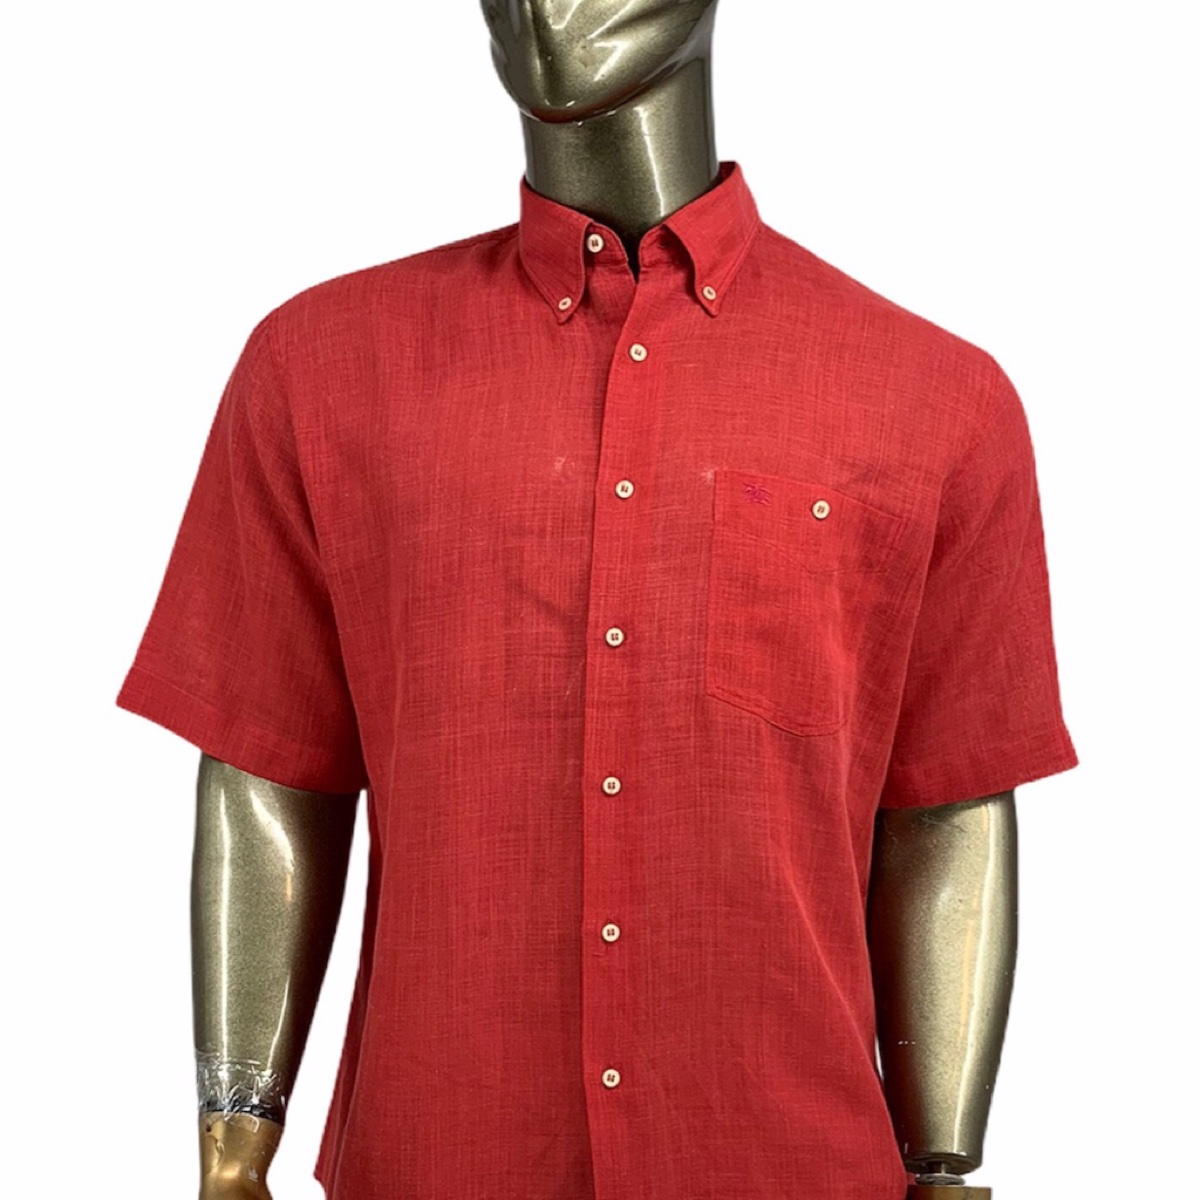 Burberry shirt short sleeve xl red